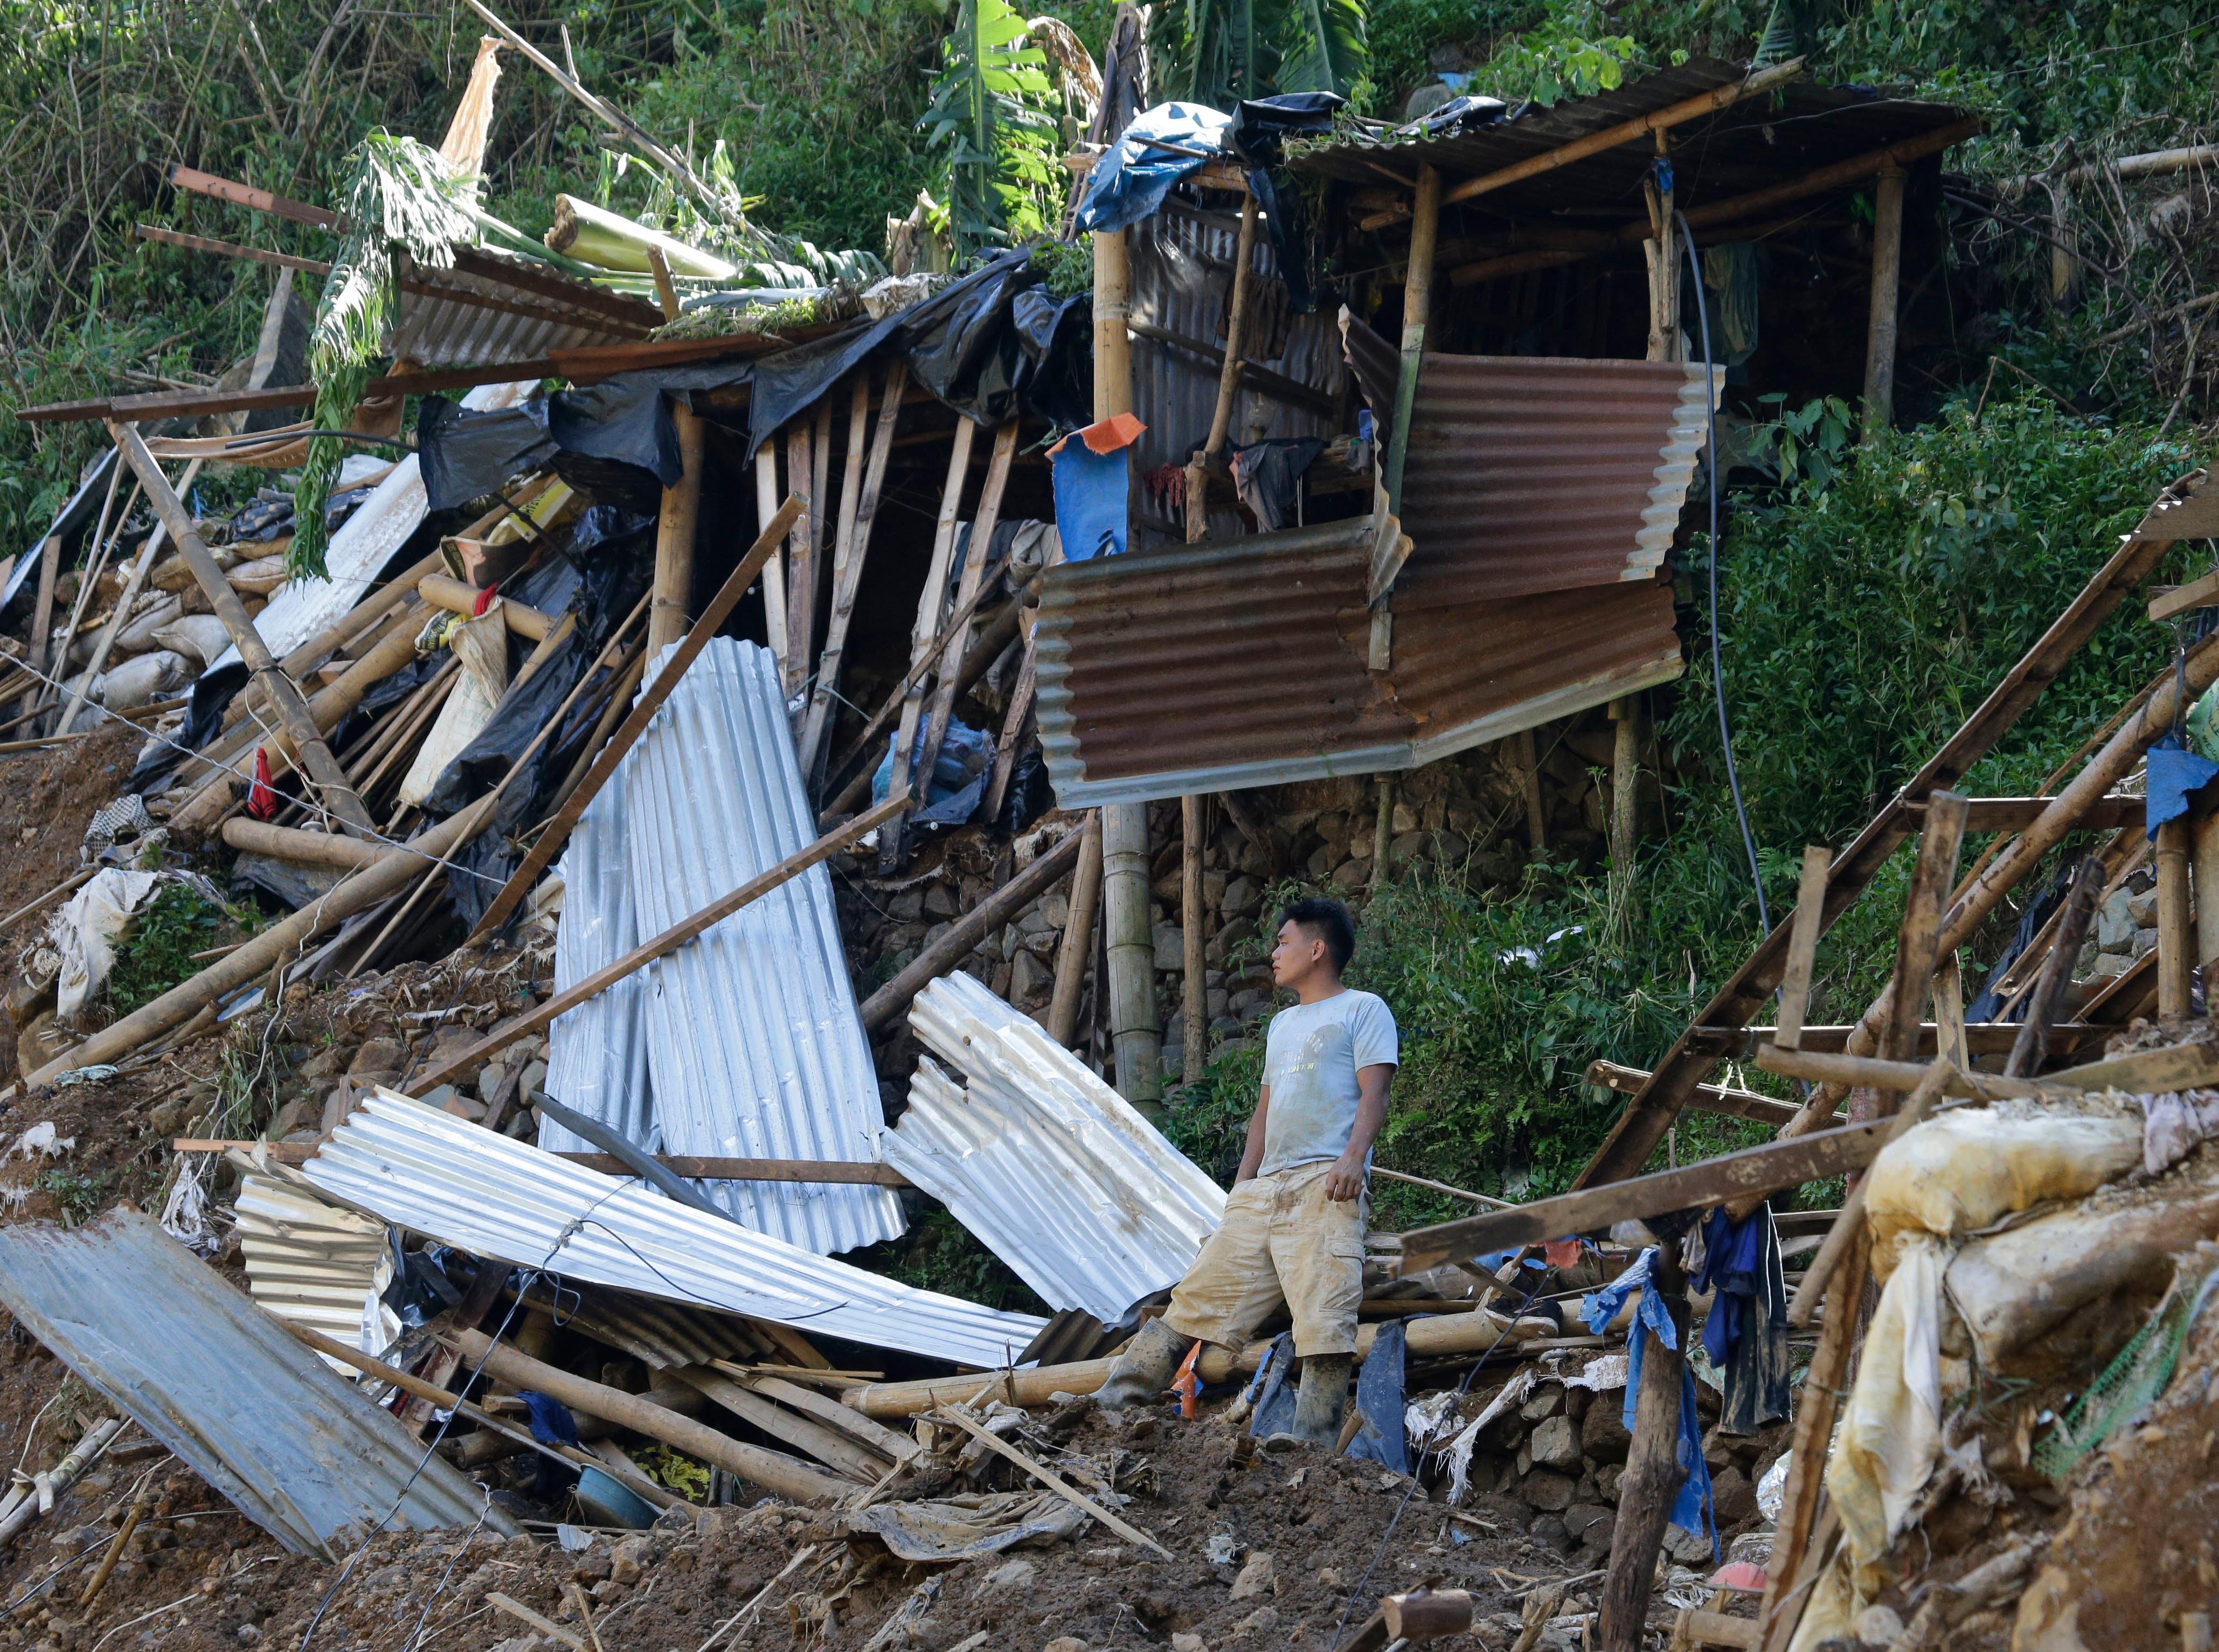 A resident stands beside toppled houses at the site where victims are believed to have been buried by a landslide after Typhoon Mangkhut lashed Itogon, Benguet province, northern Philippines on Monday, Sept. 17, 2018. Itogon Mayor Victorio Palangdan said that at the height of the typhoon's onslaught Saturday afternoon, dozens of people, mostly miners and their families, rushed into an old three-story building in the village of Ucab. The building, a former mining bunkhouse that had been transformed into a chapel, was obliterated when part of a mountain slope collapsed.